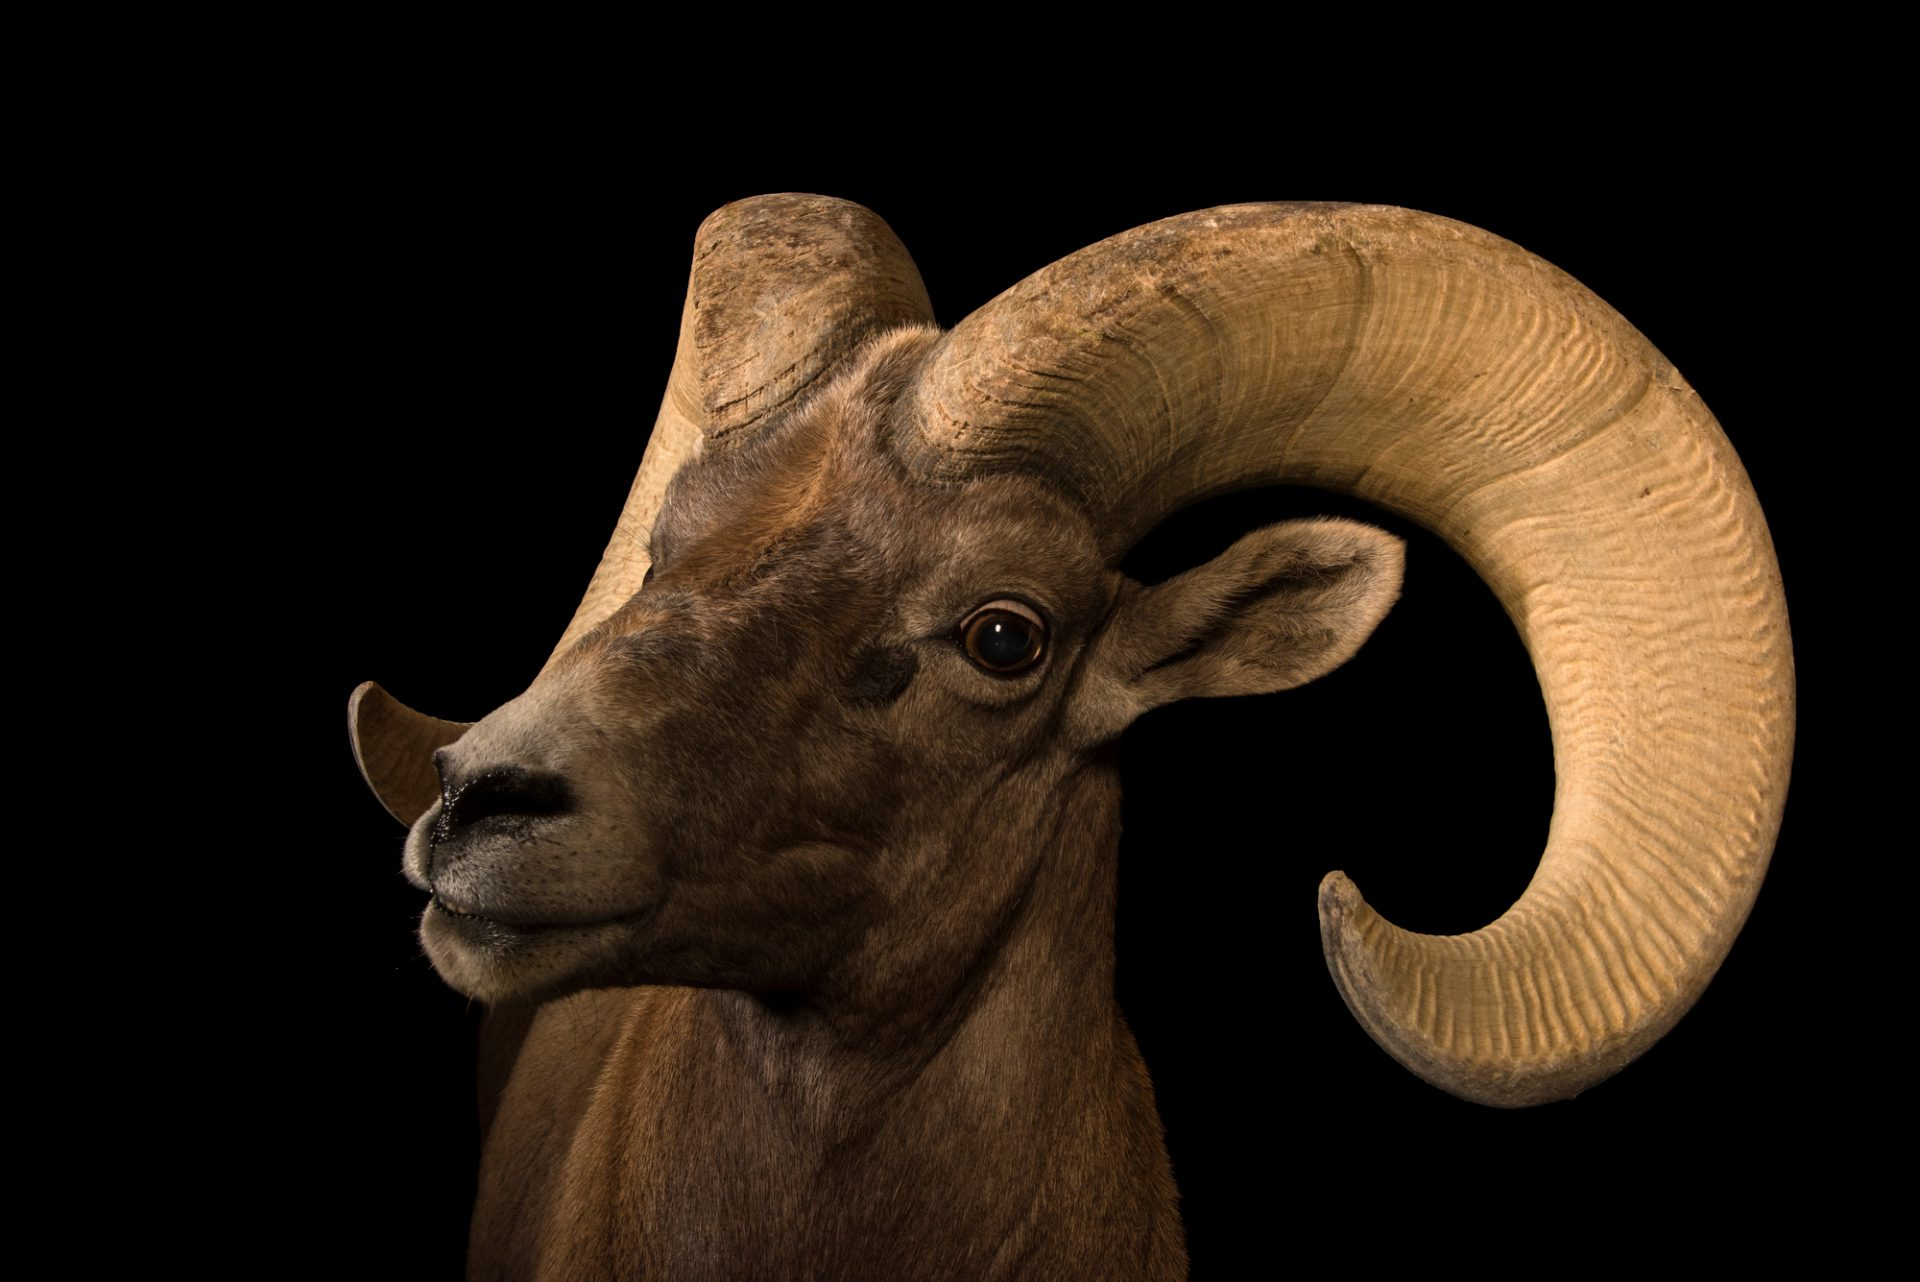 Photo: Desert bighorn sheep (Ovis canadensis nelsoni) at the Arizona Sonora Desert Museum in Tucson, AZ.